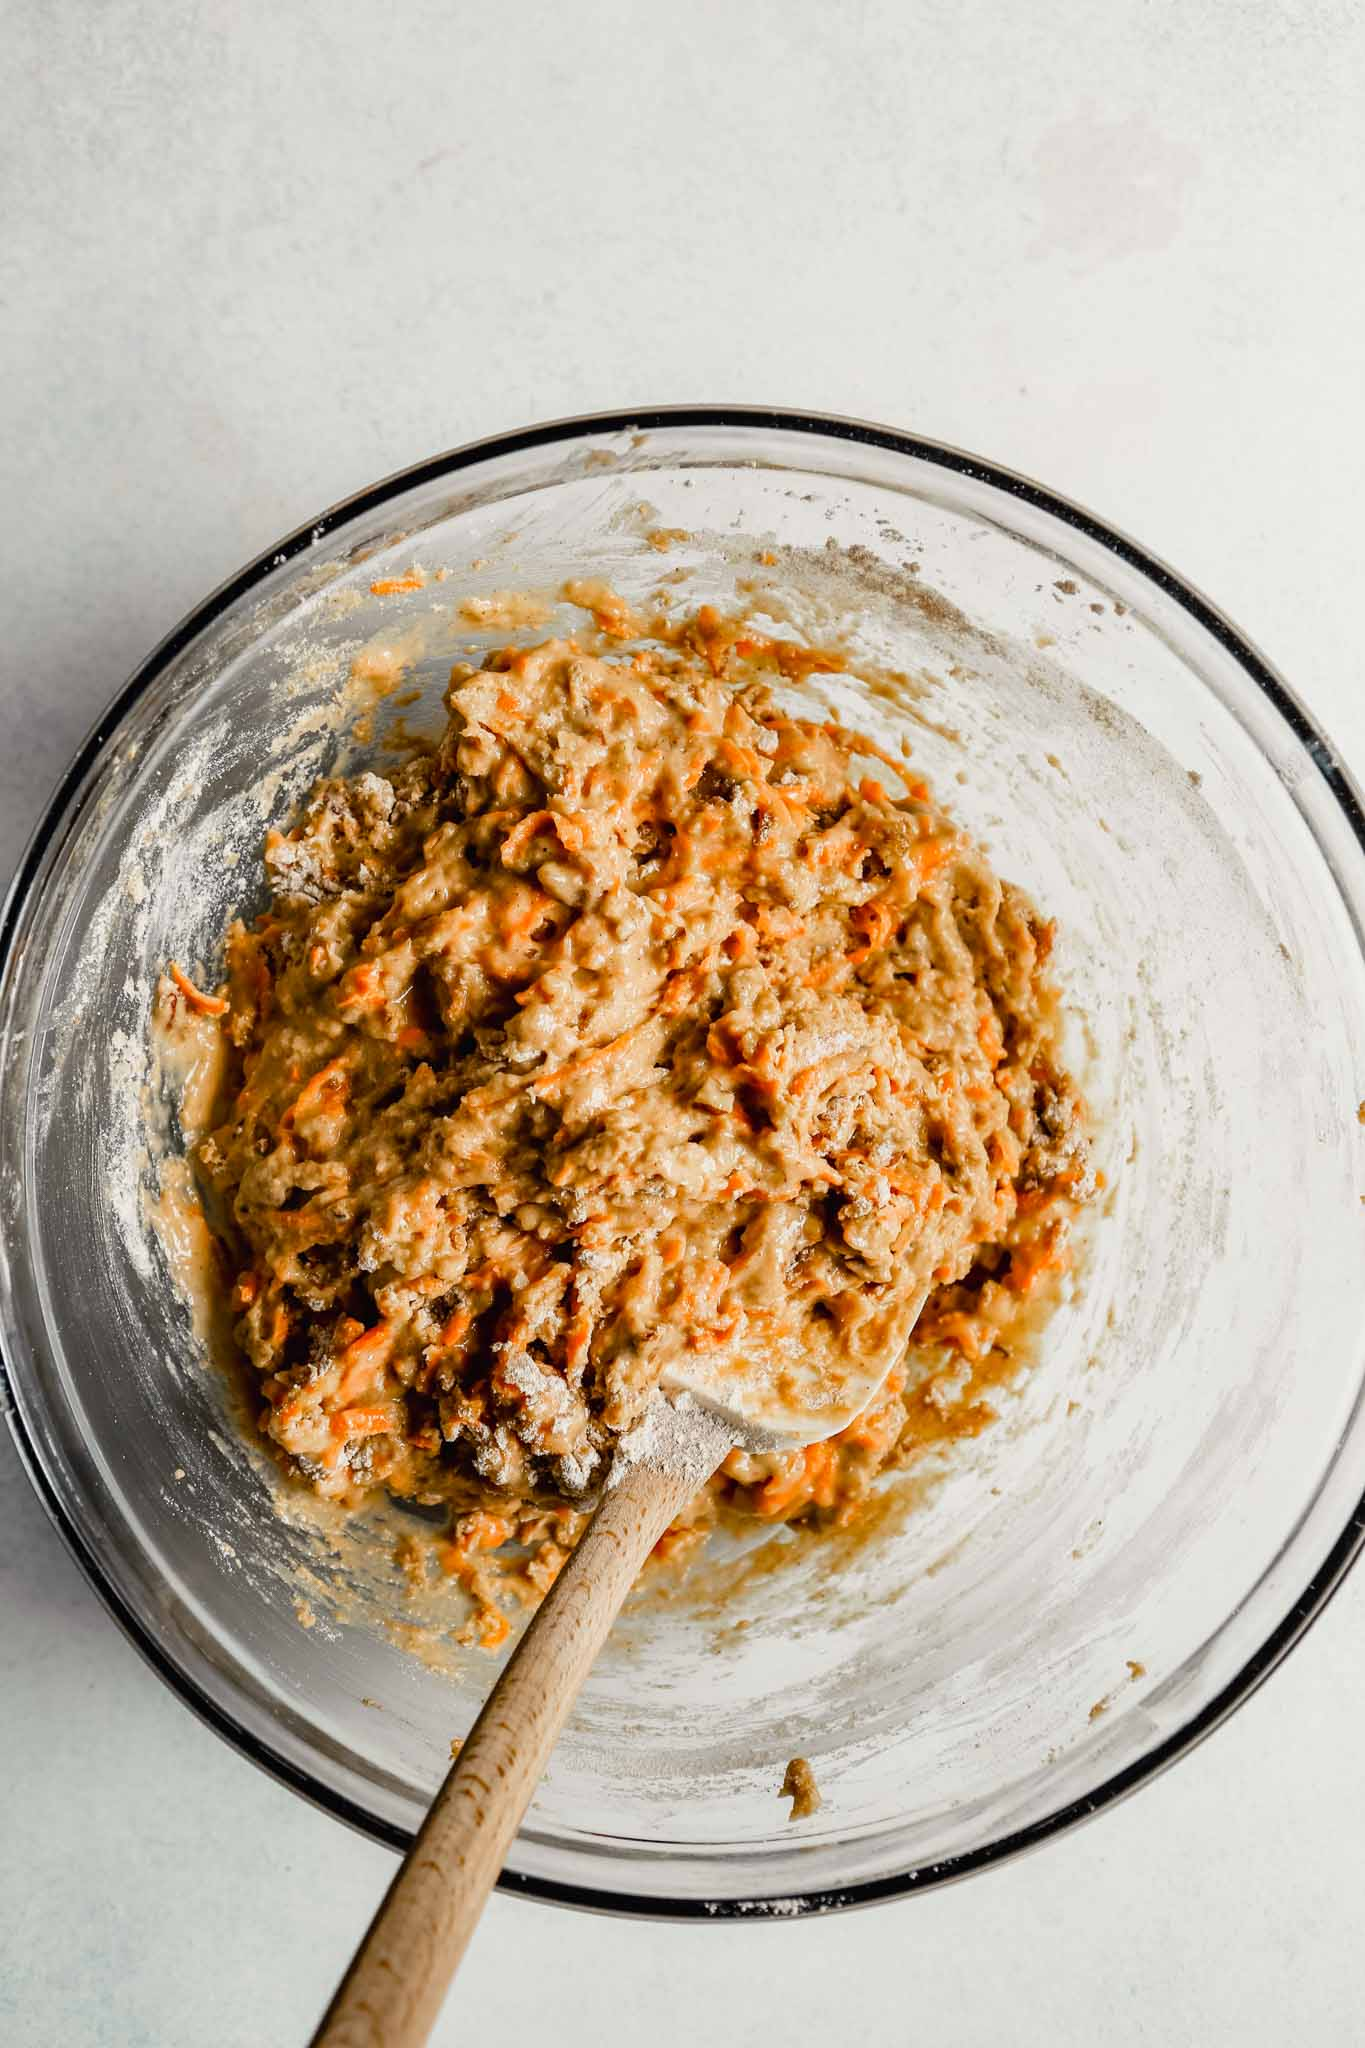 Photograph of carrot bread batter in a large glass bowl